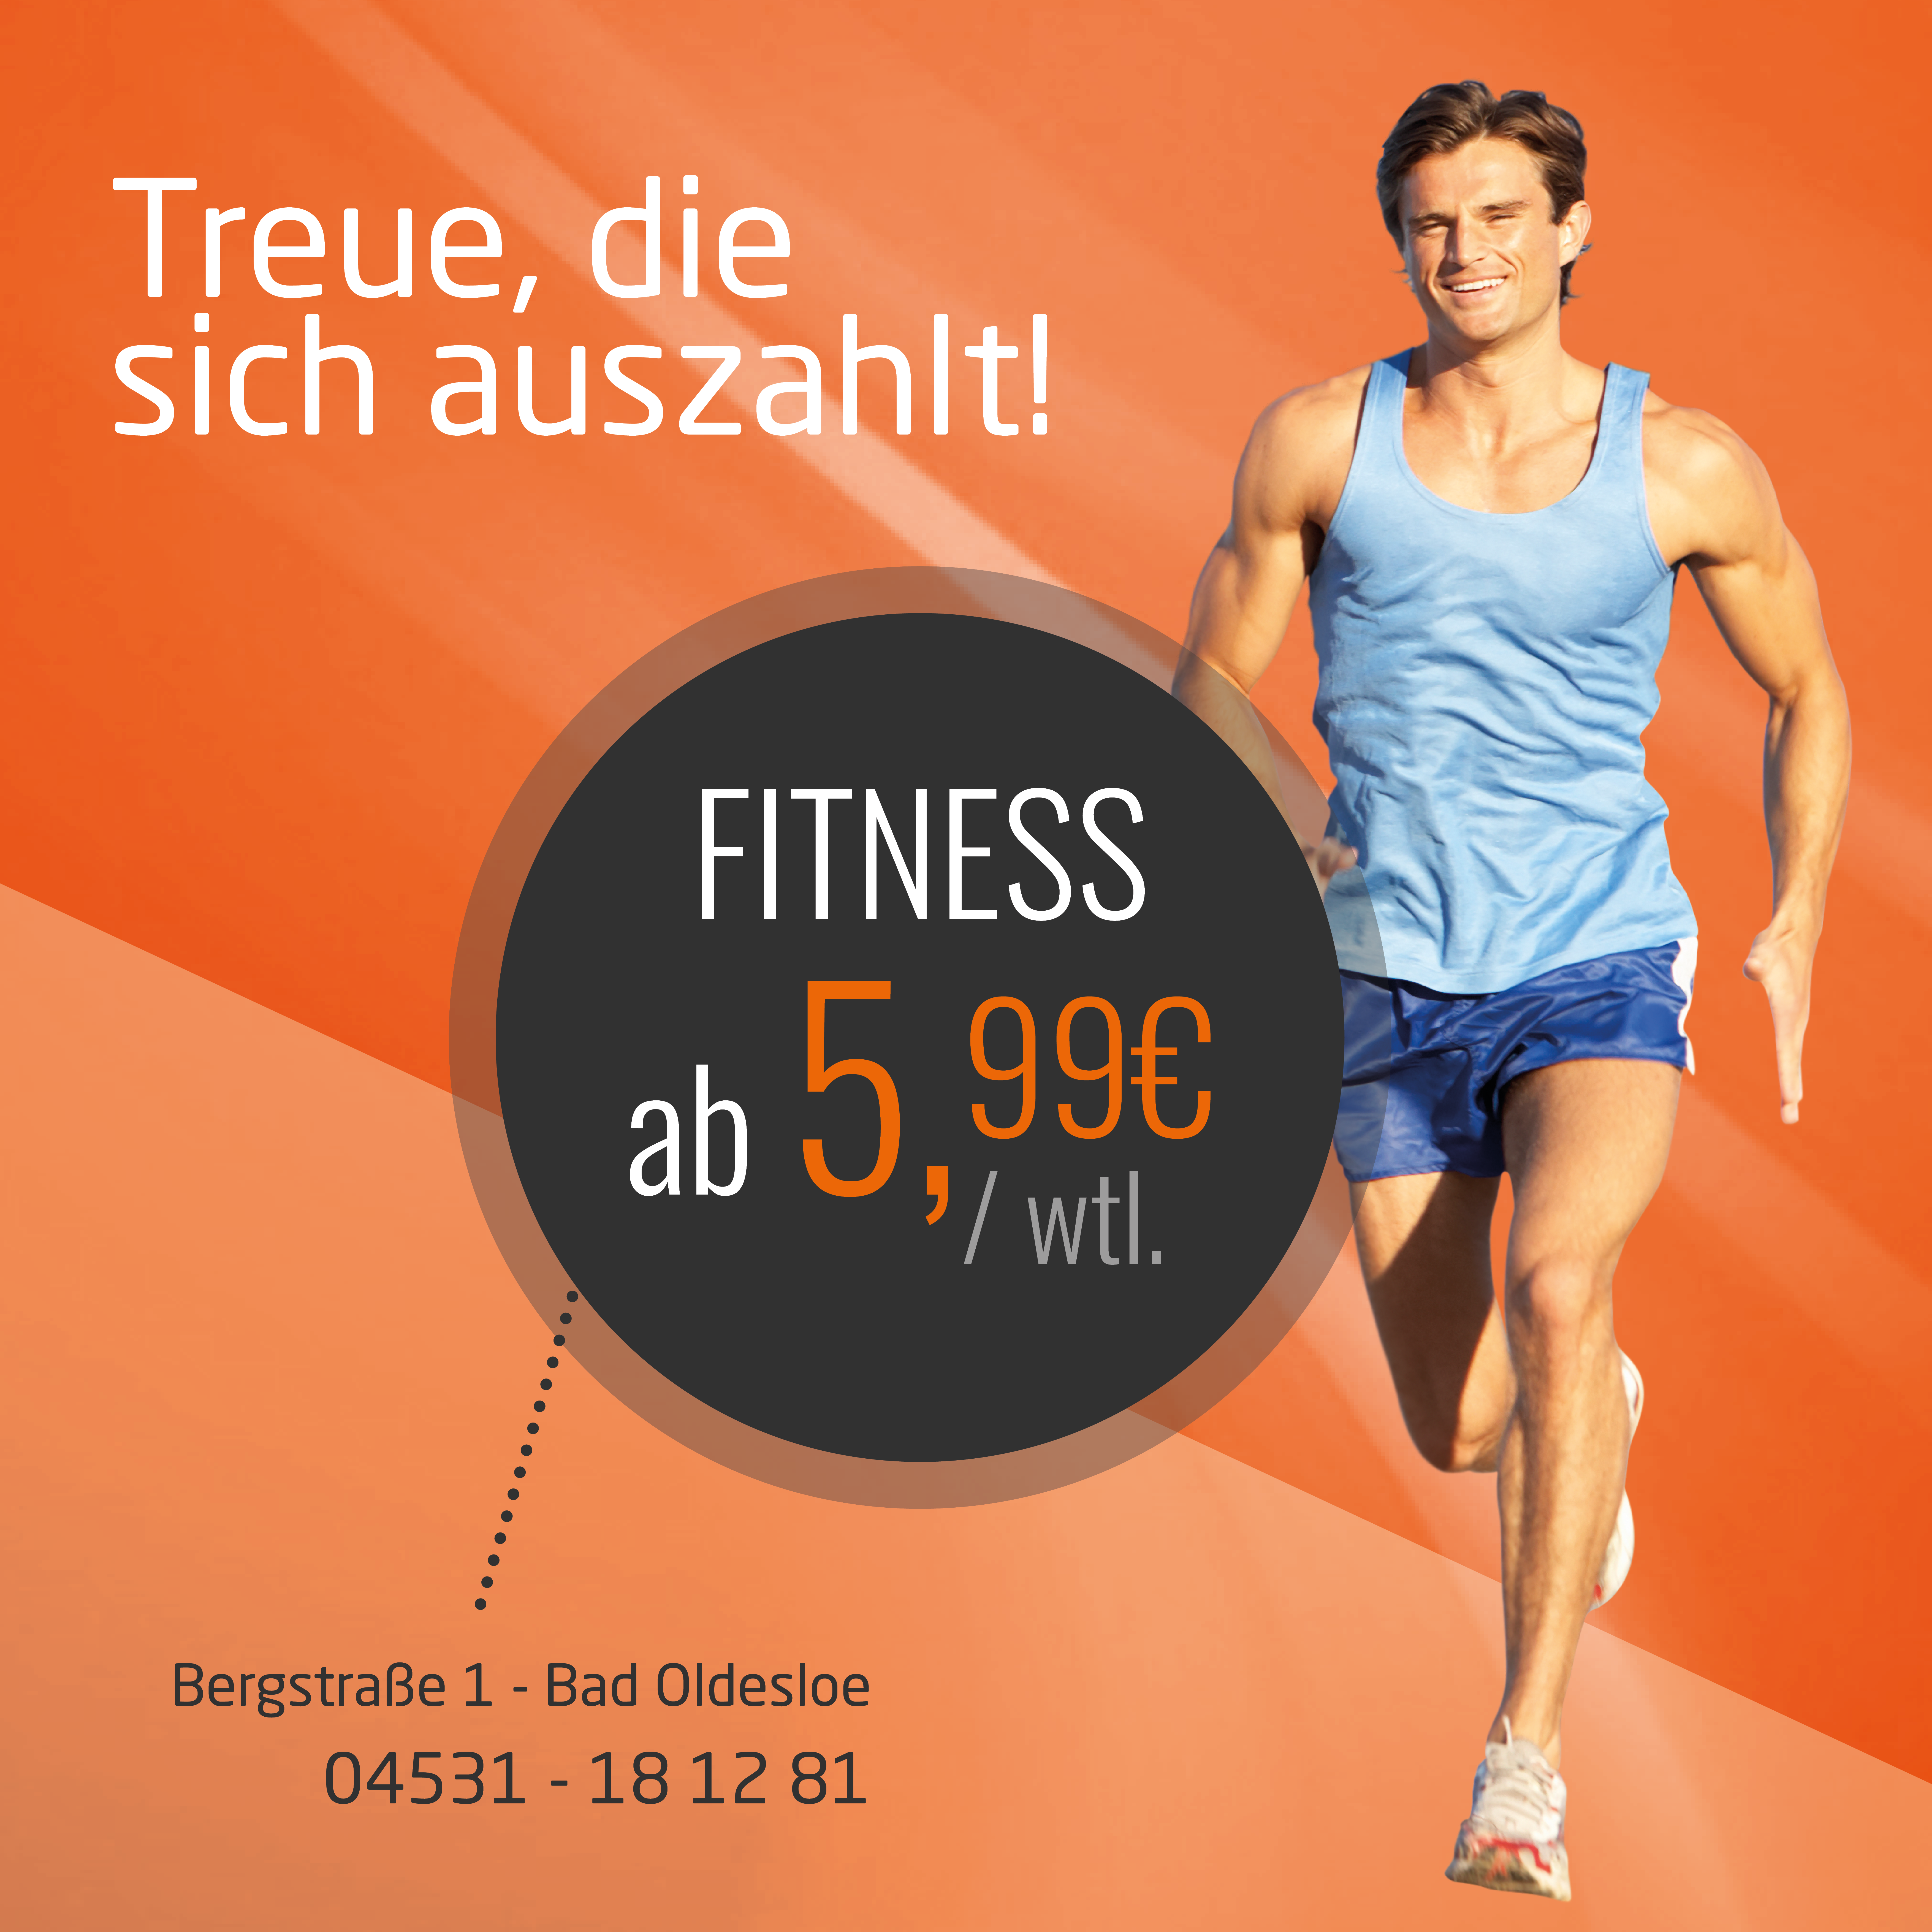 Treue Rabatt Wellness & Fitness Bad Oldesloe